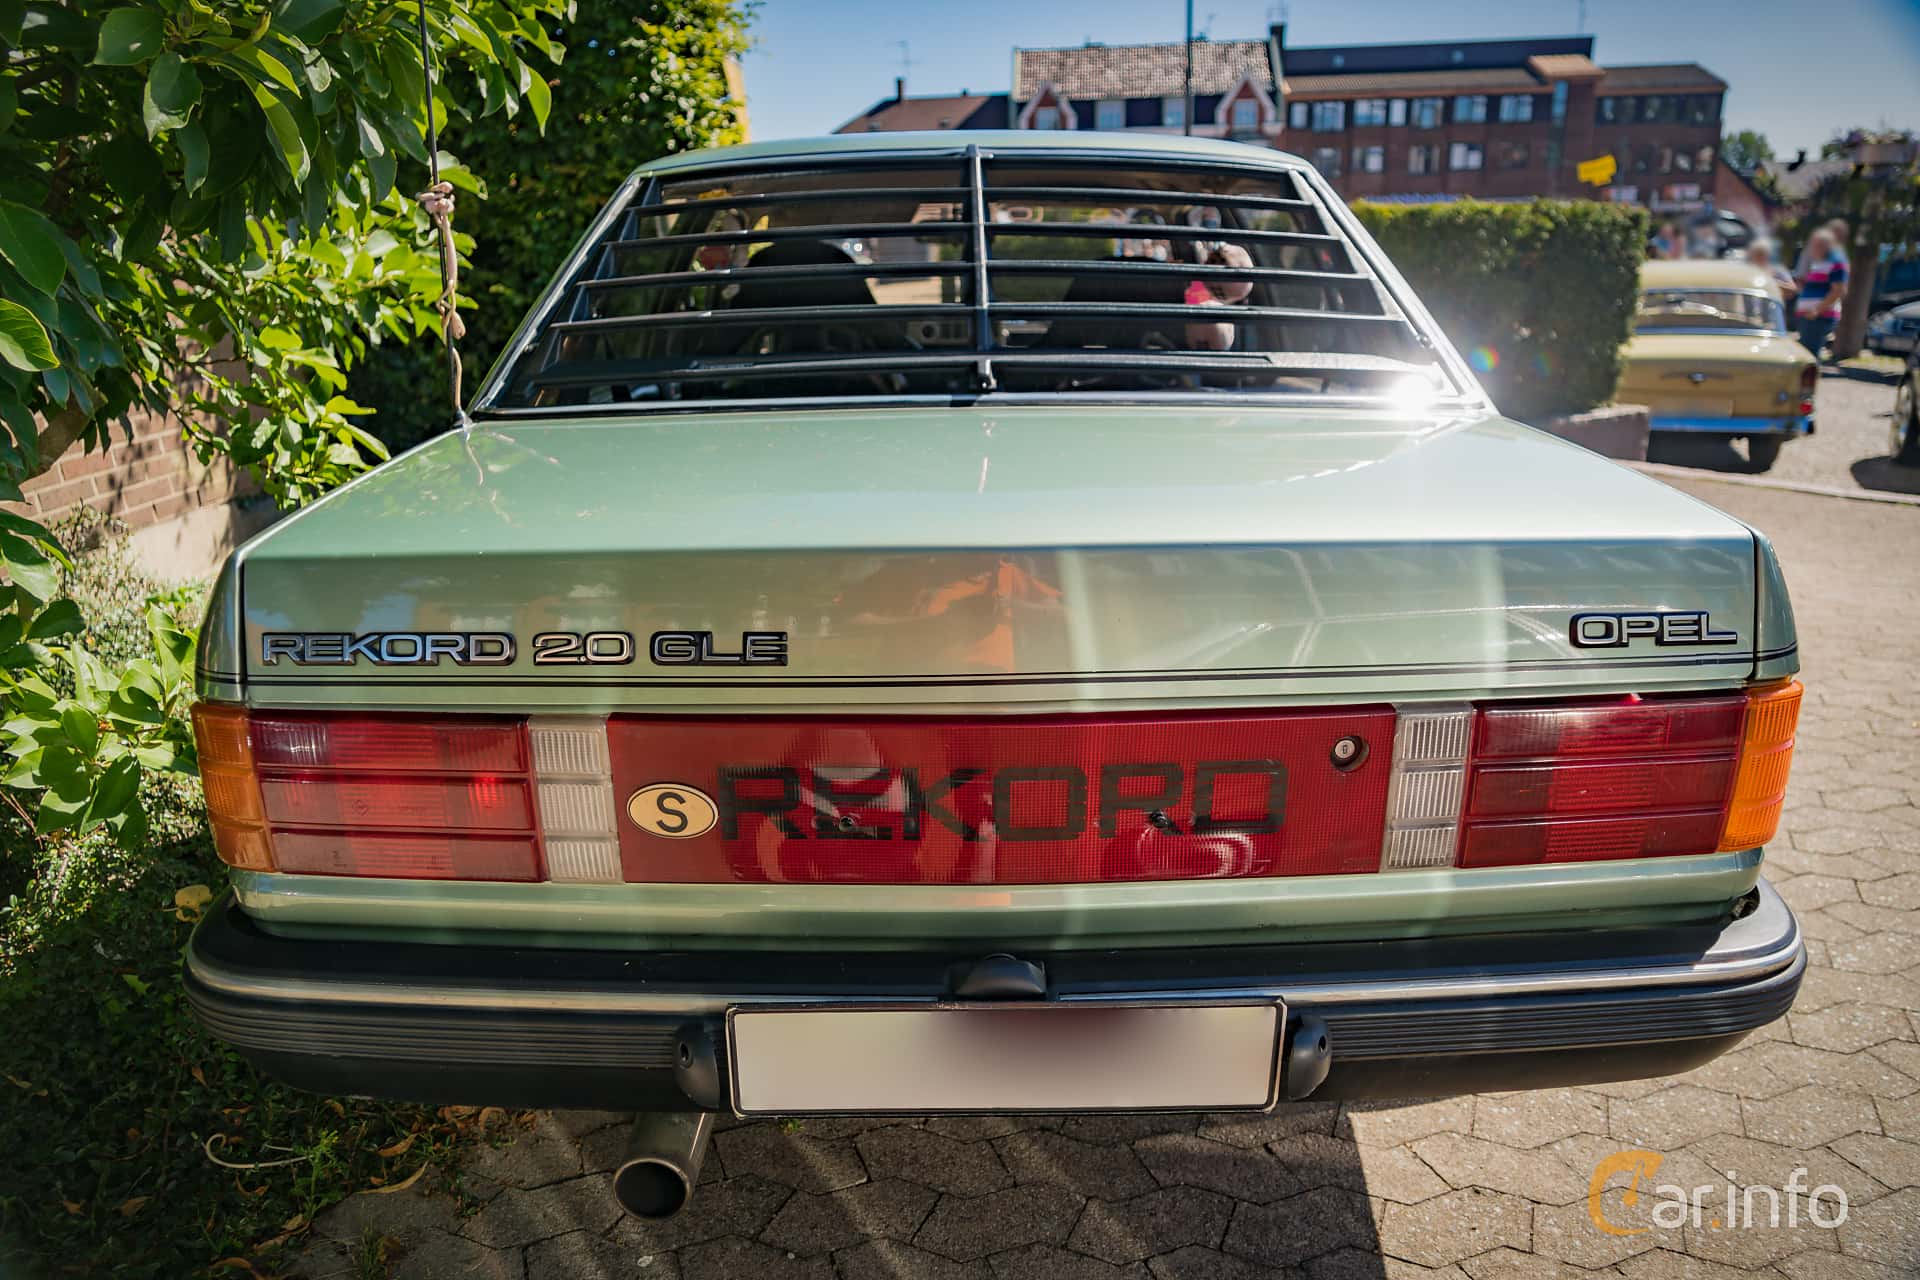 3 images of opel rekord 2 0 e manual 110hp 1983 by marcusliedholm rh car info Opel Rekord E 2000 Opel Rekord 1900